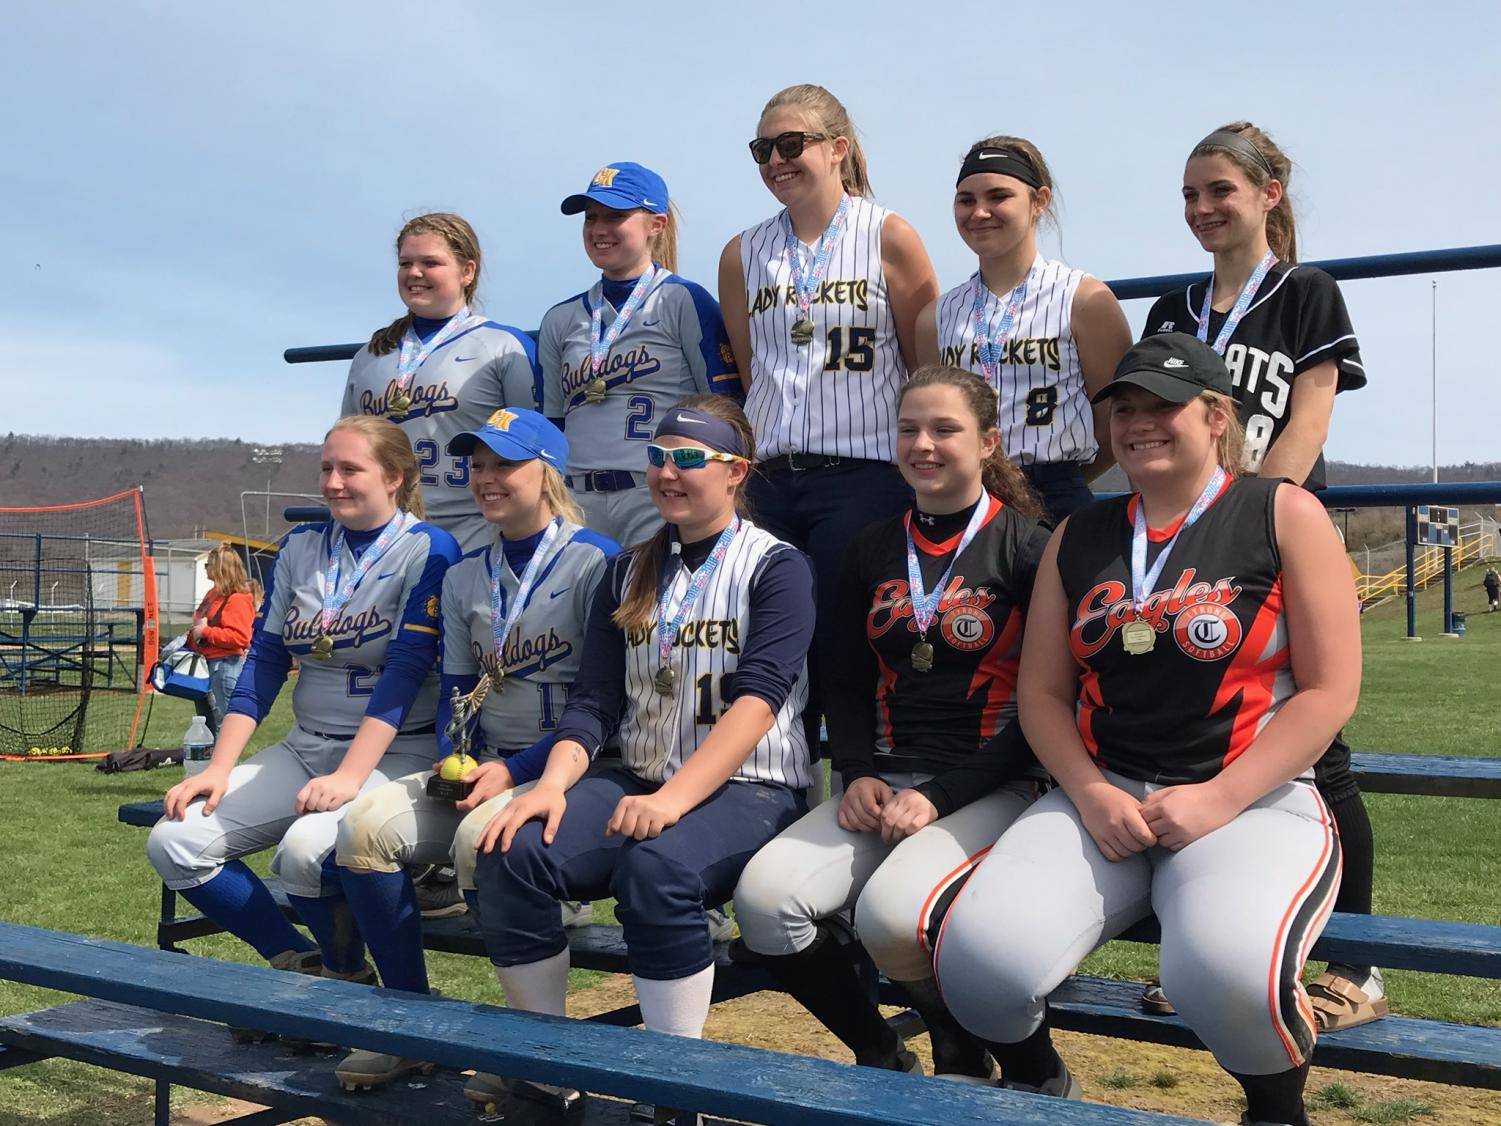 Tyrone's  Cate Baran and Emily Lehman made the all-star team